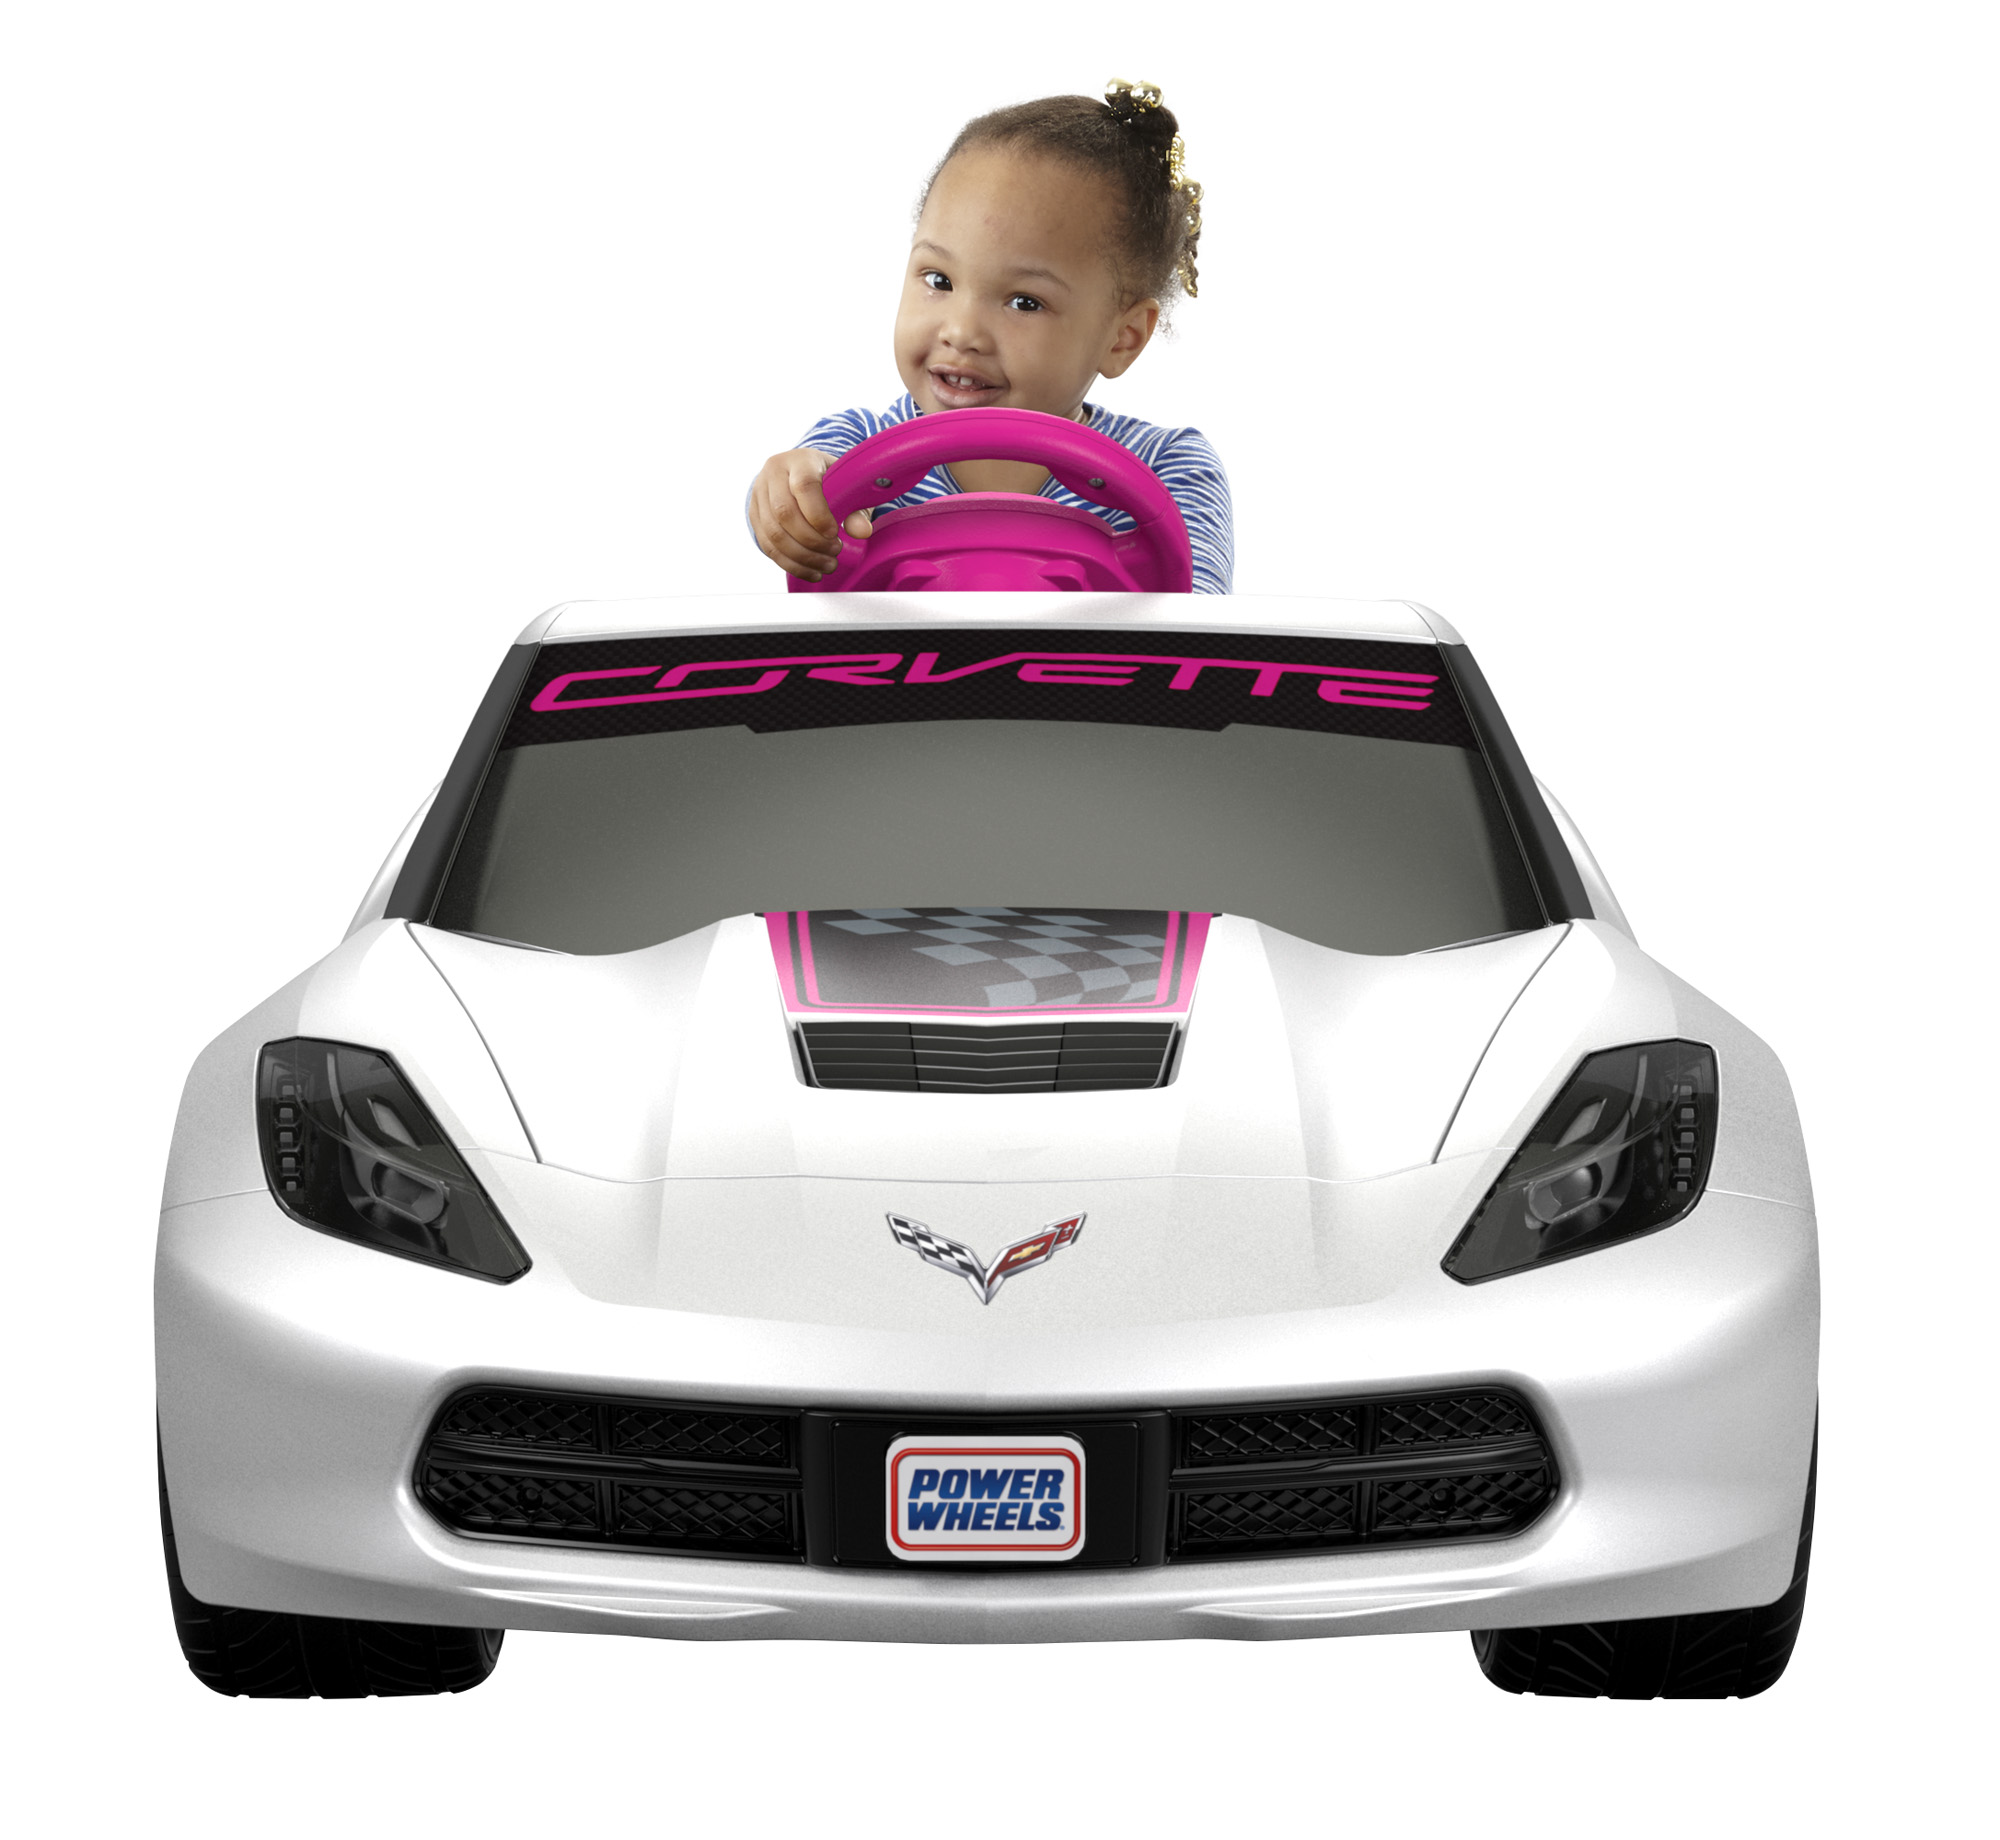 Power Wheels Girls' Corvette 6V Battery-Powered Ride-On